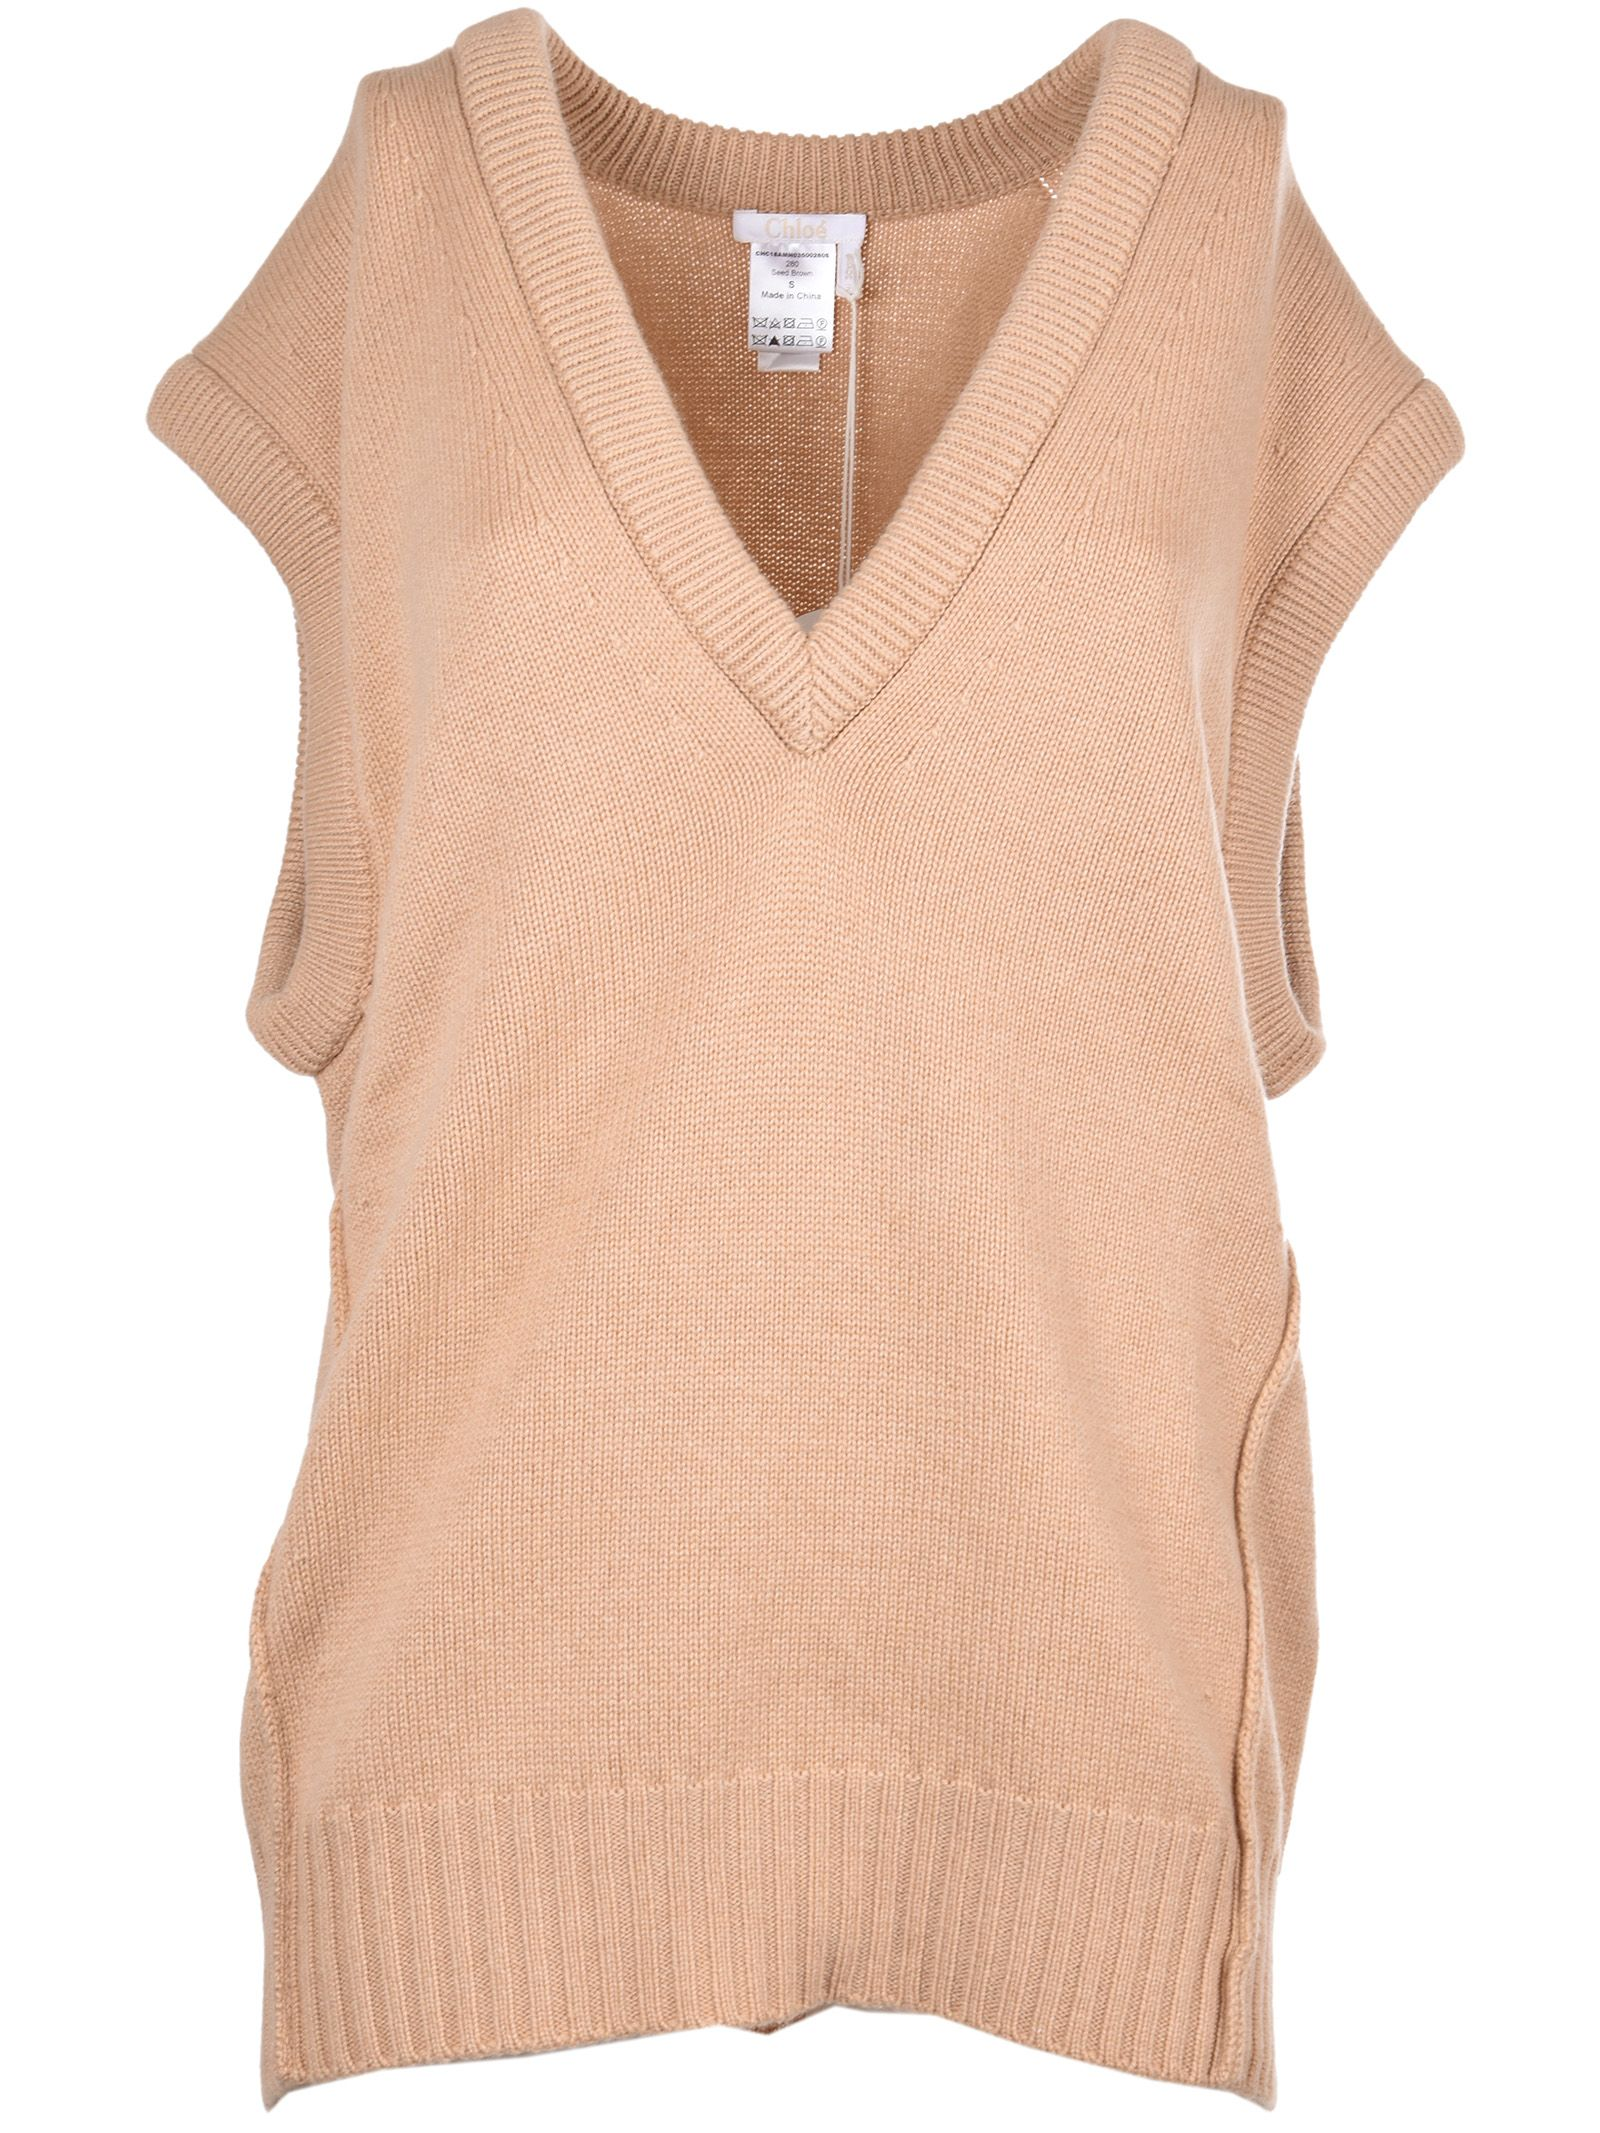 Chloé V-neck Top